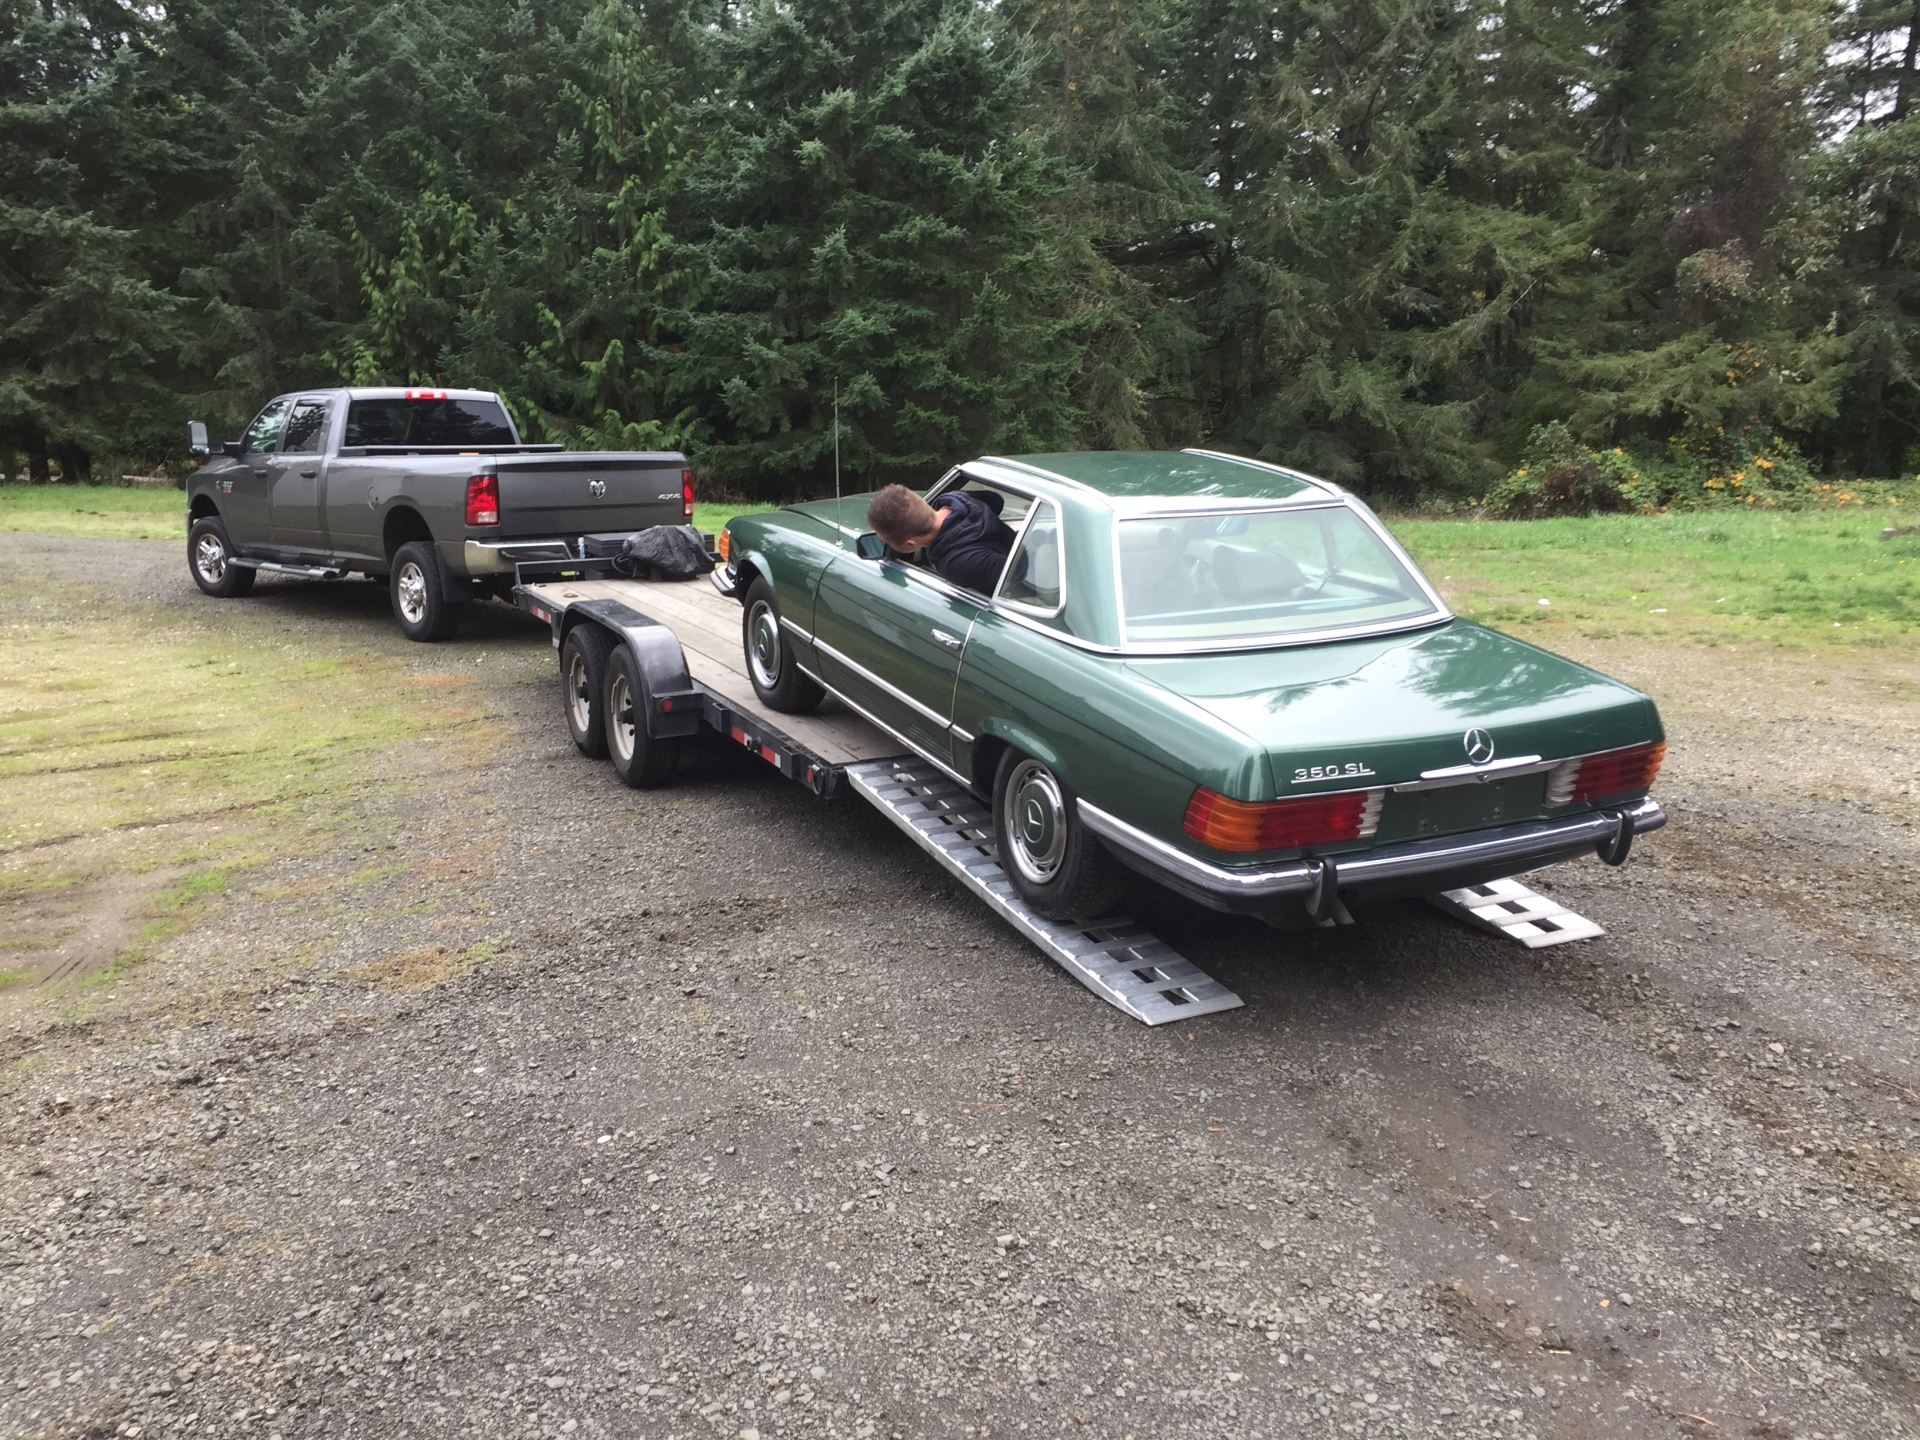 1972 Mercedes 350SL 4.5 from Class Winners starting its long overseas journey to Chris in Germany